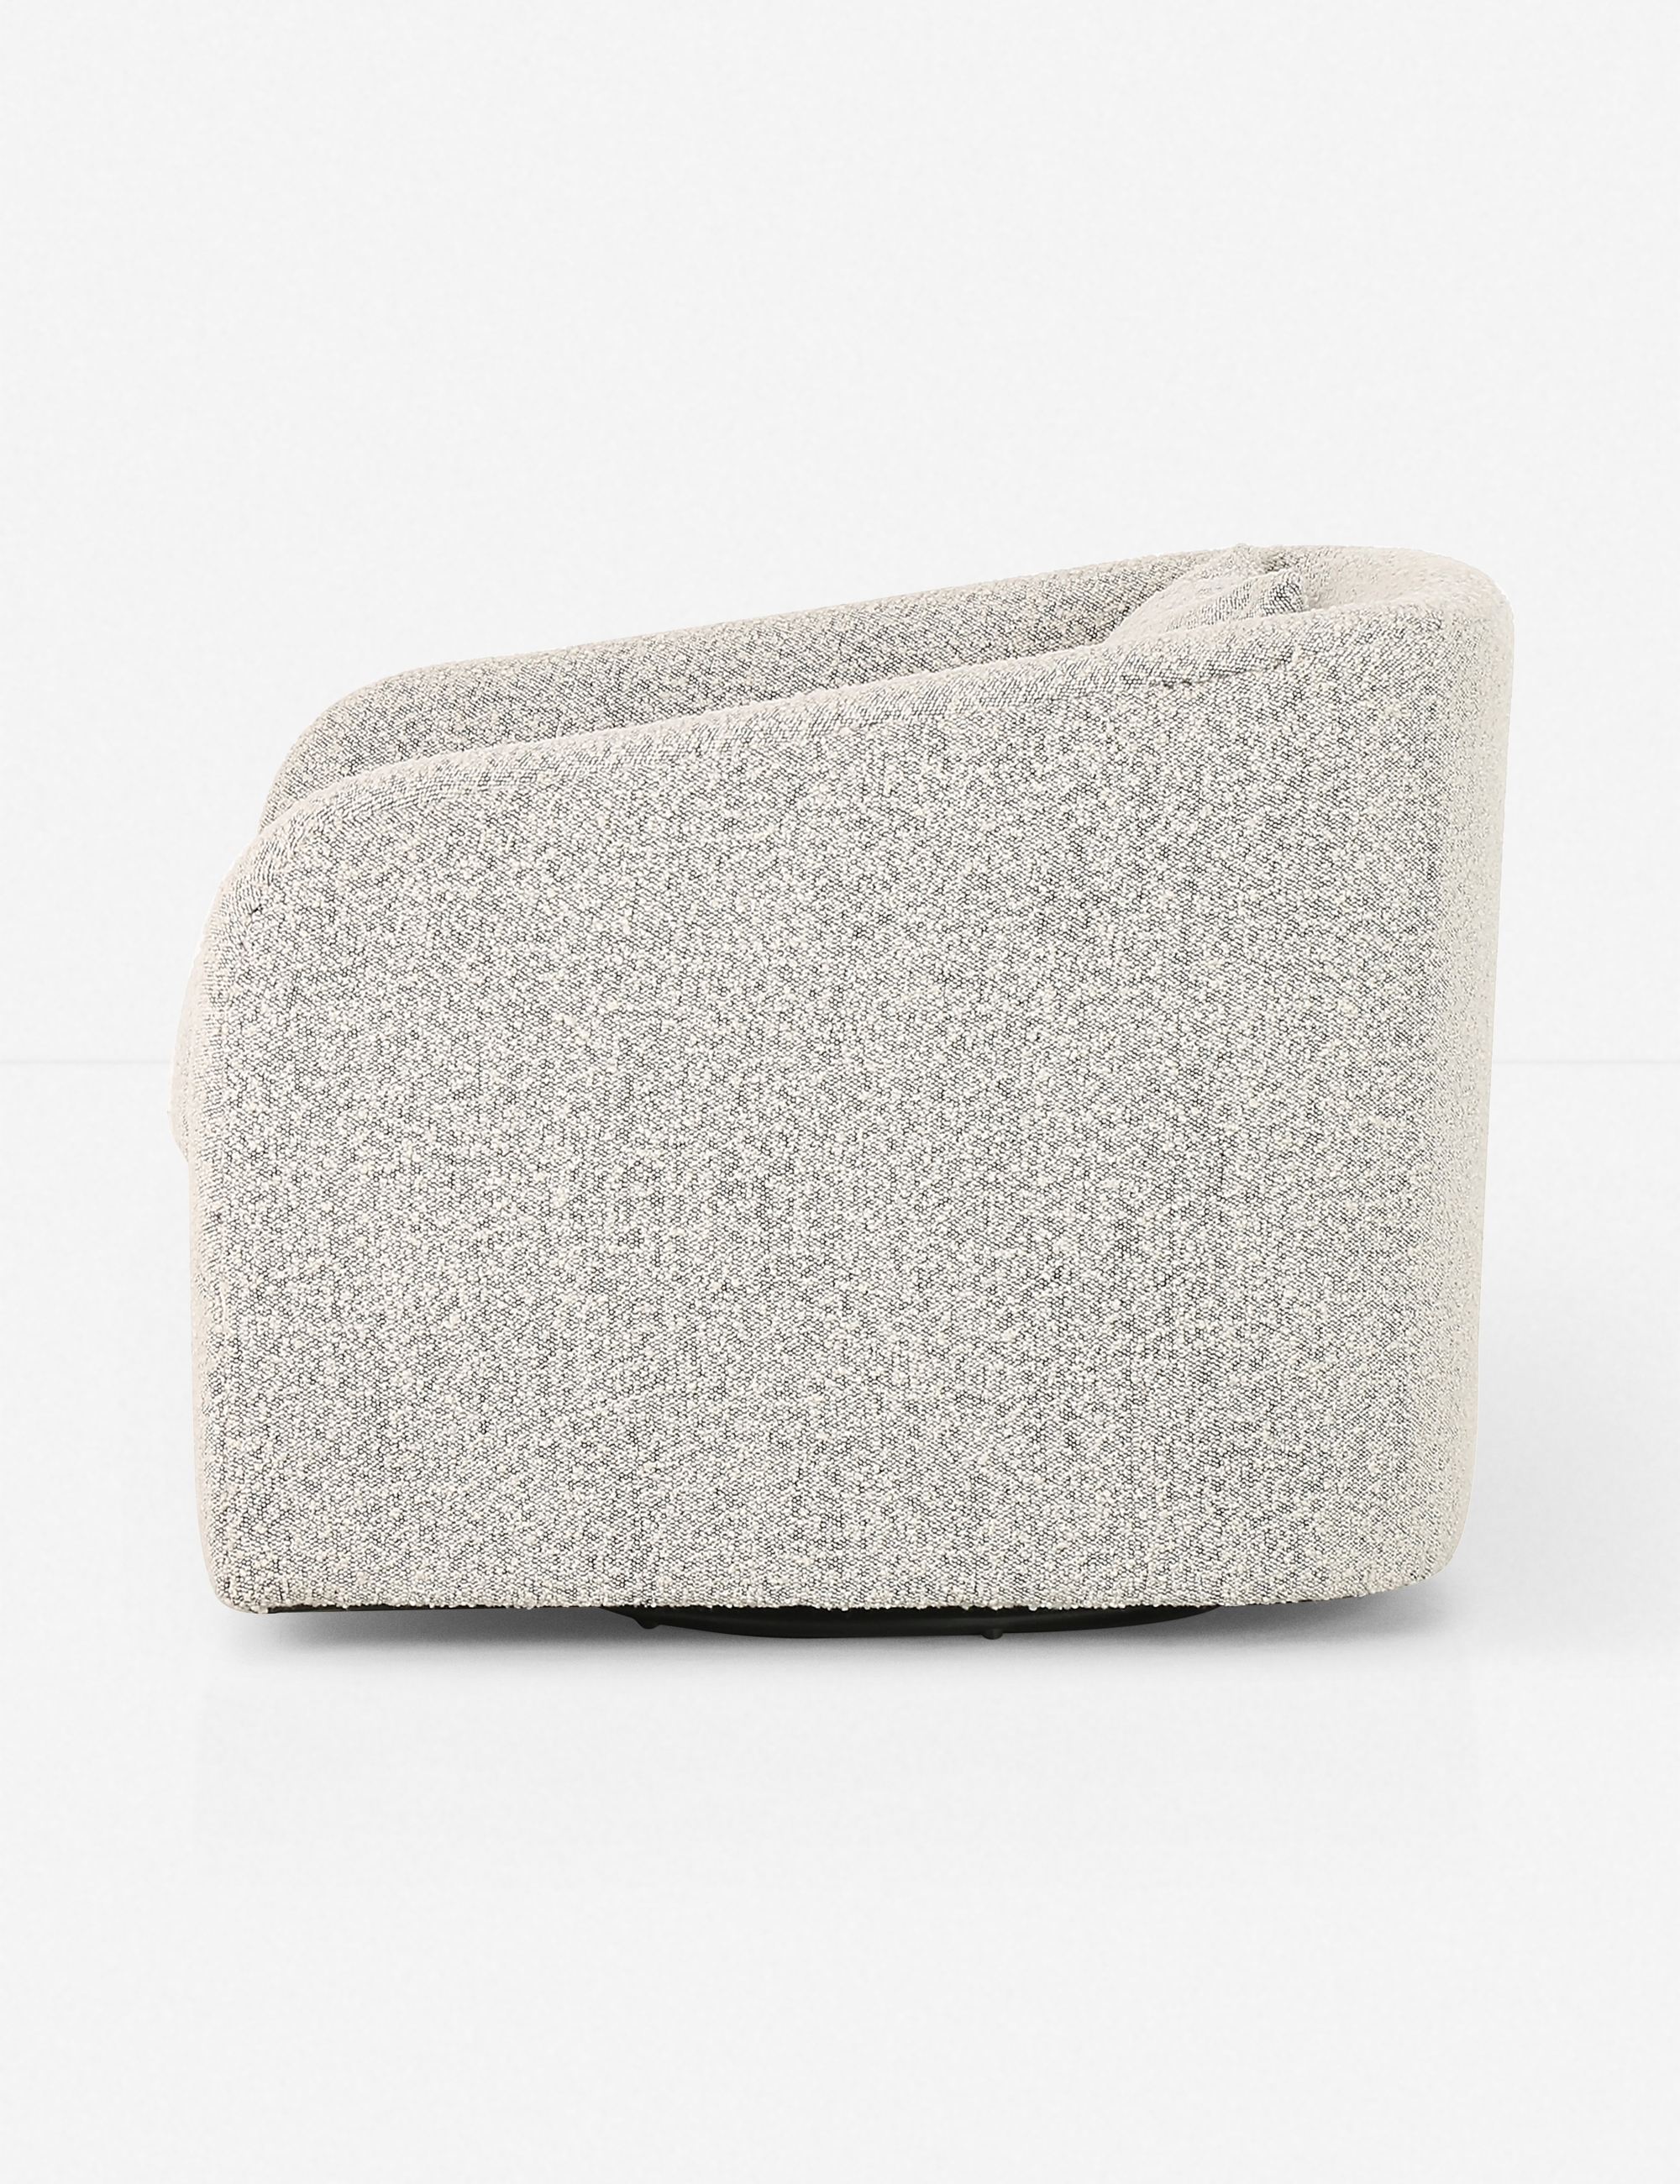 Ren Swivel Chair, Knoll Domino